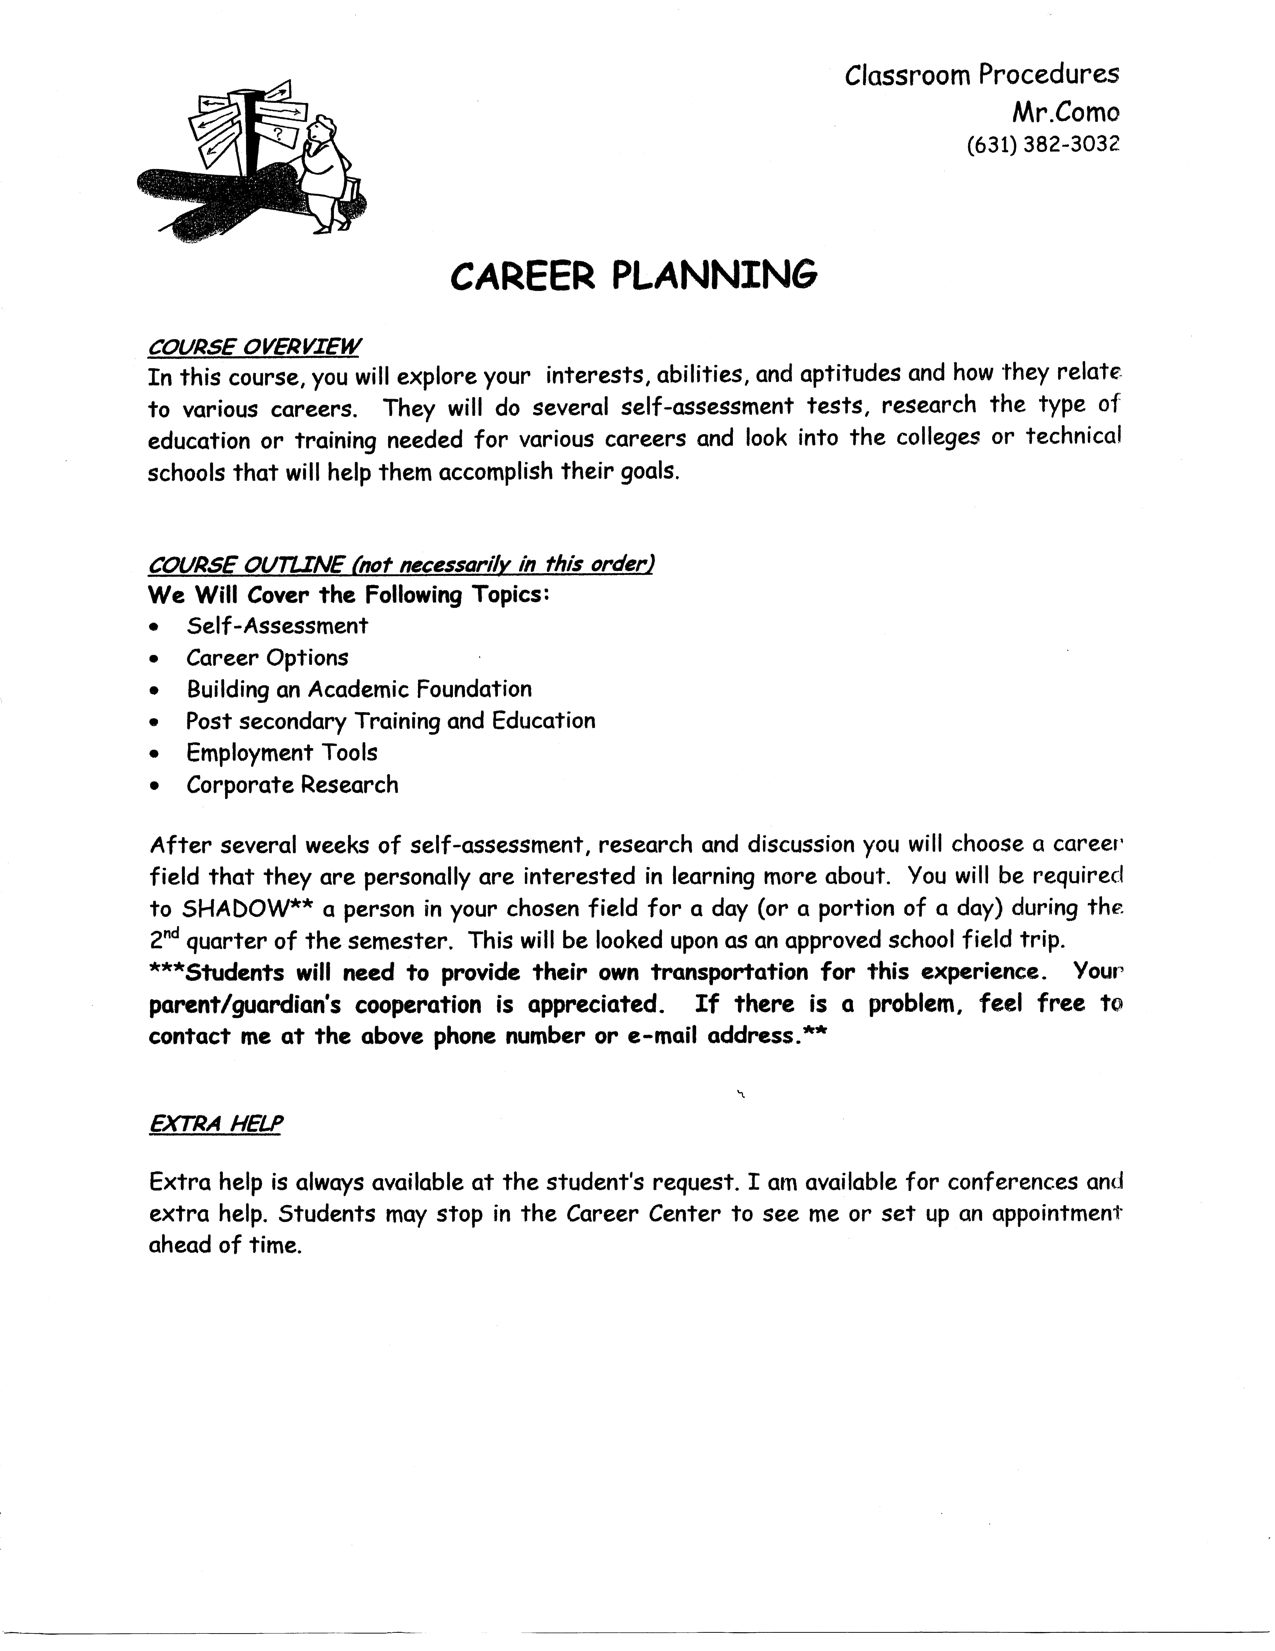 career planning course outline mr como s career planning blog career planning course outline